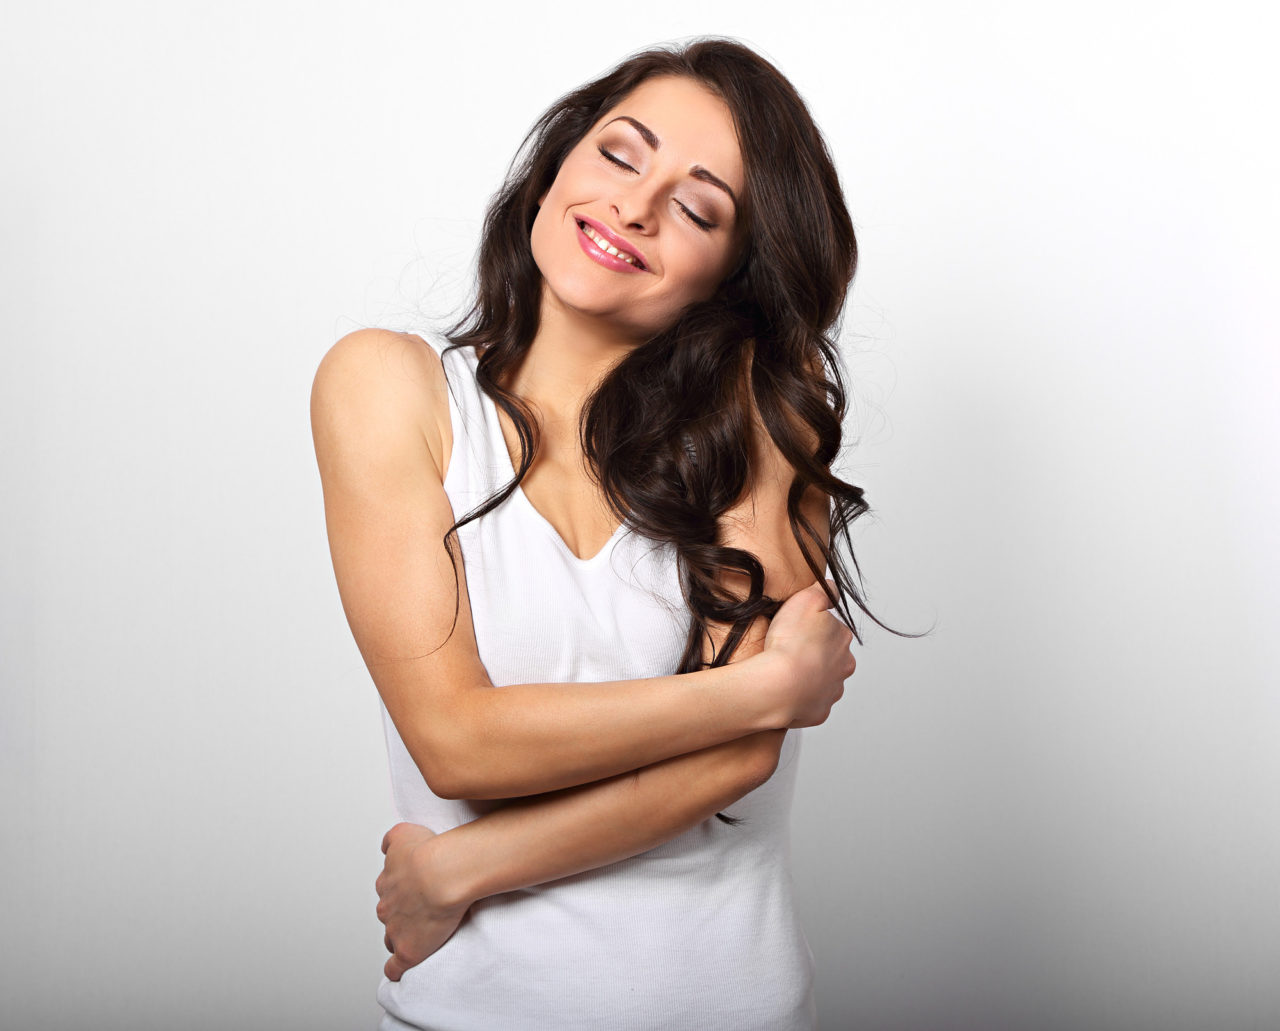 Happy sporty woman hugging herself with natural emotional enjoying face on white background